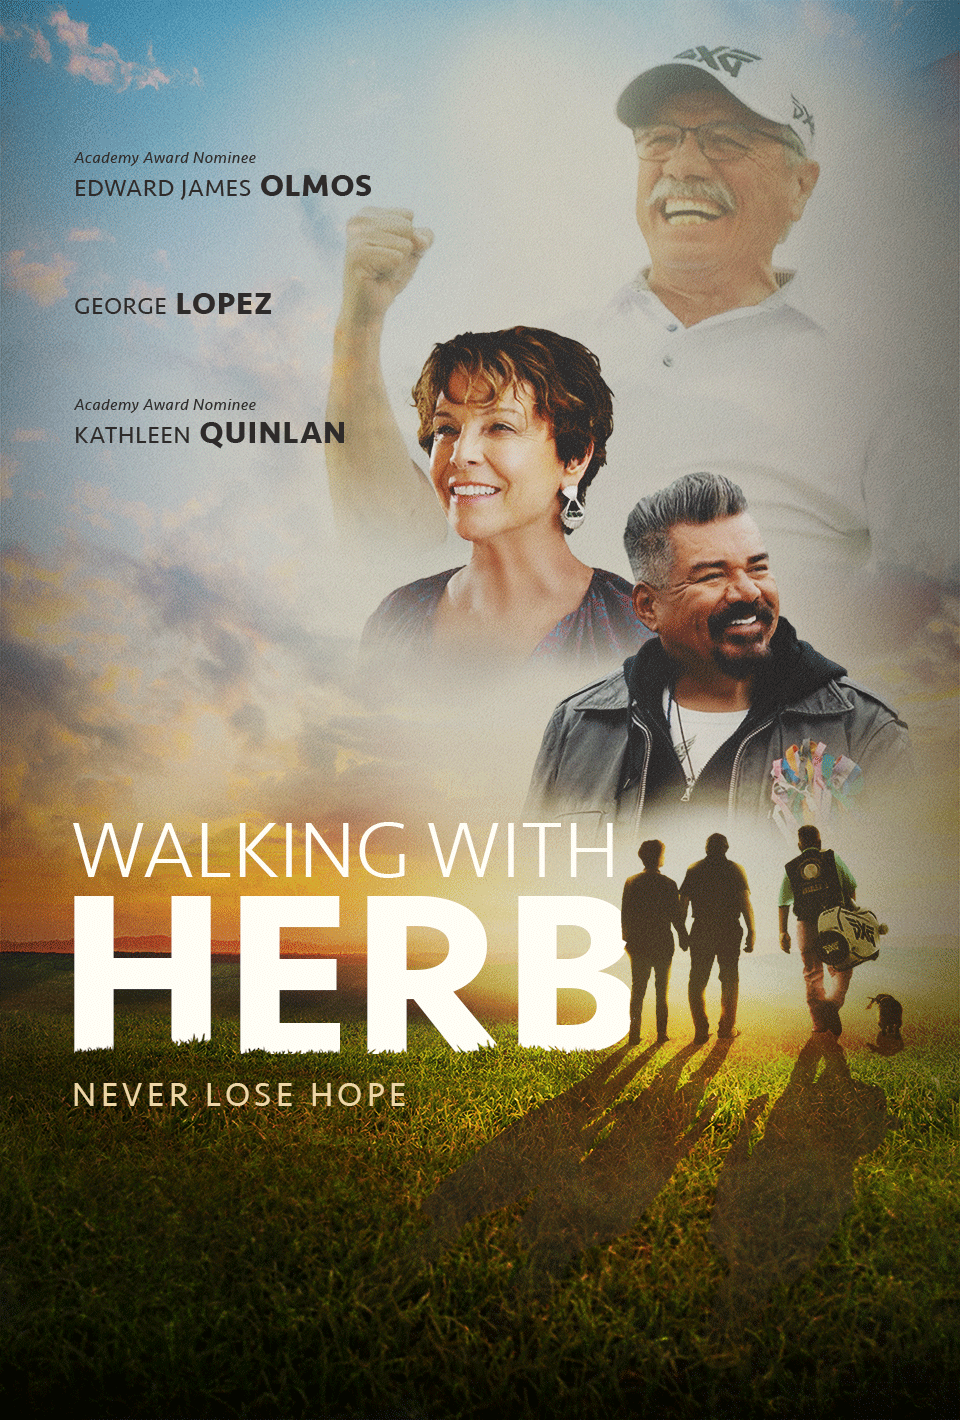 Walking with Herb movie